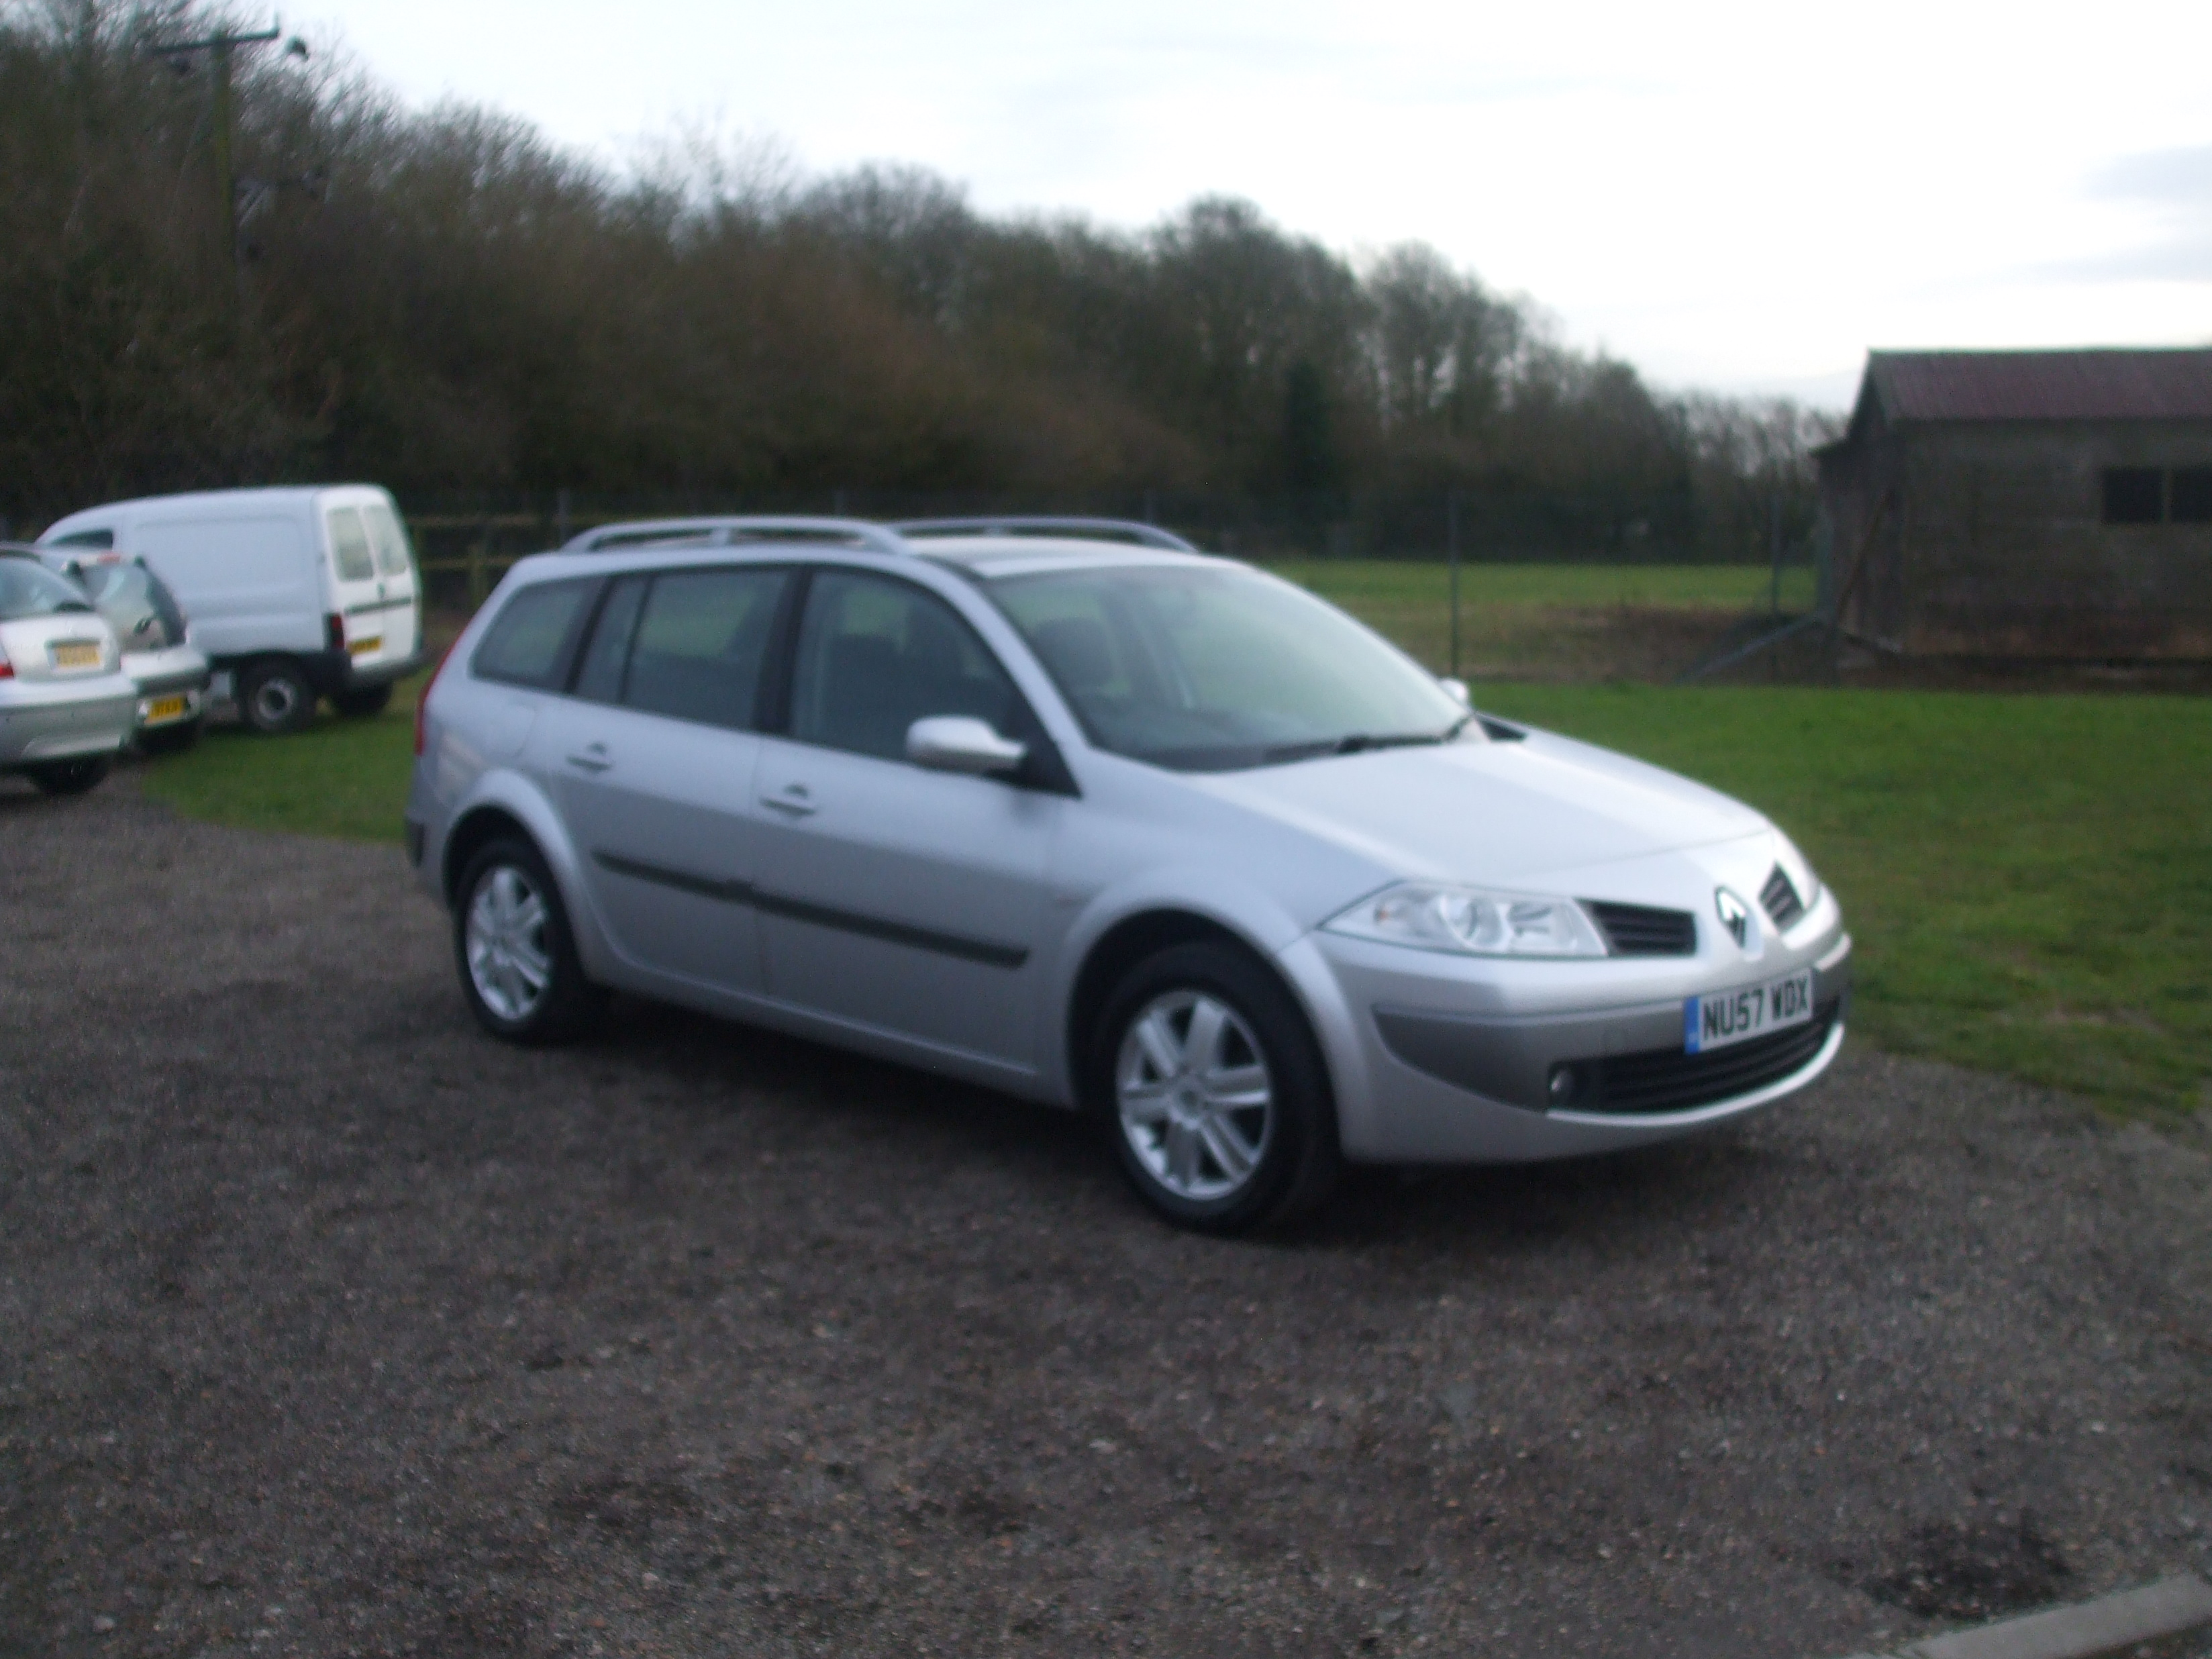 renault megane 1 9 dci dynamique estate 57 reg sold ymark vehicle services. Black Bedroom Furniture Sets. Home Design Ideas